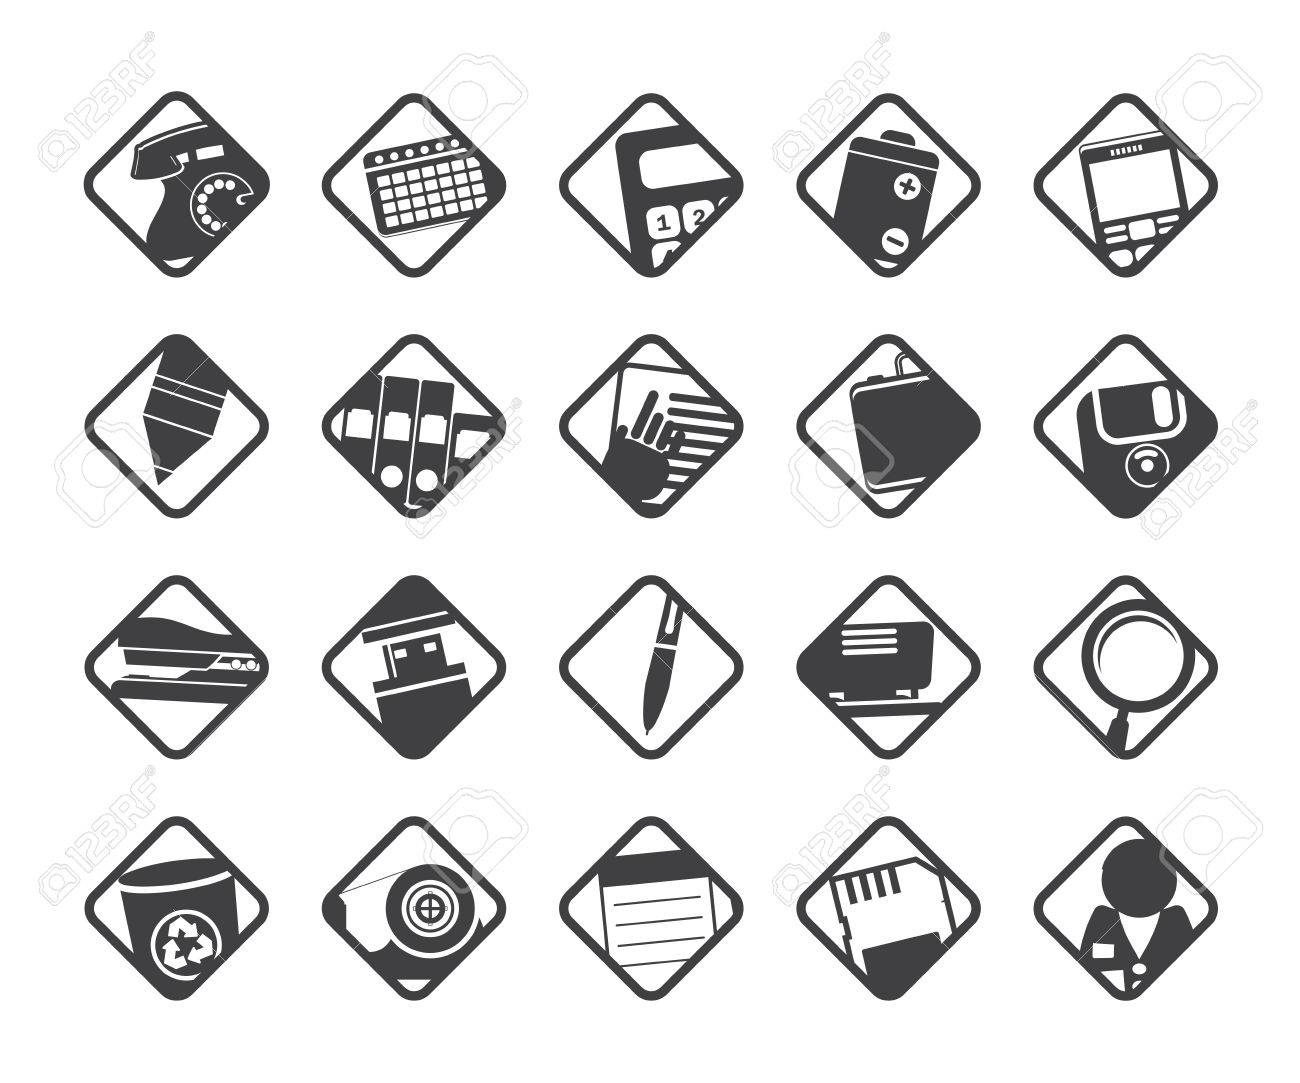 Silhouette Office tools icons -  vector icon set 3 Stock Vector - 24167270